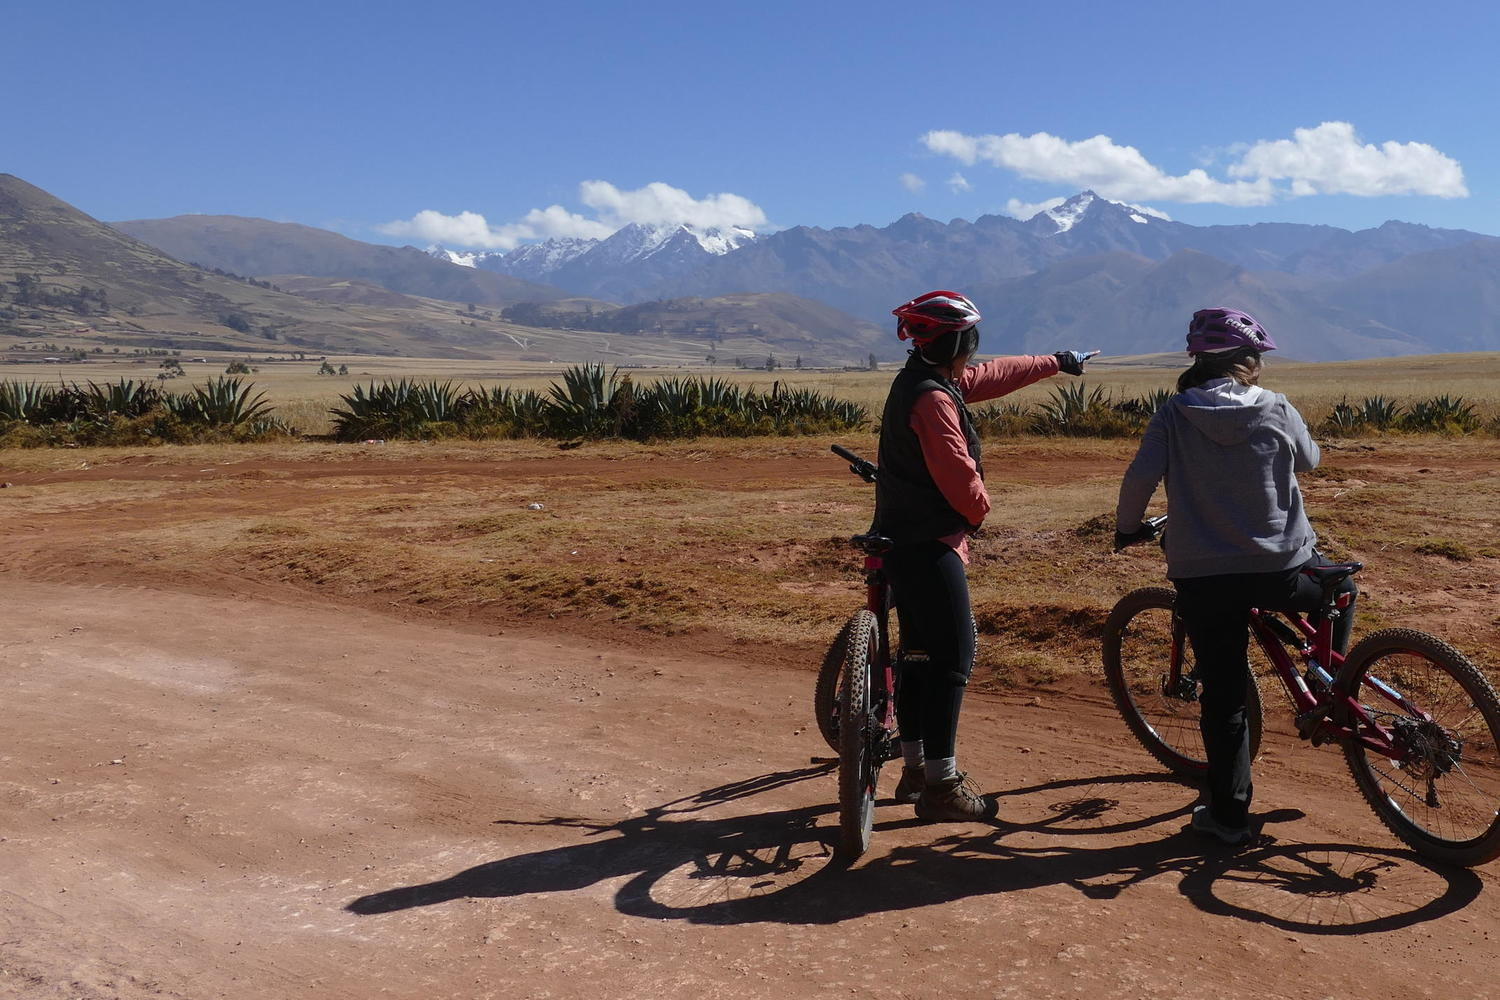 Mountain biking across the Chinchero plain